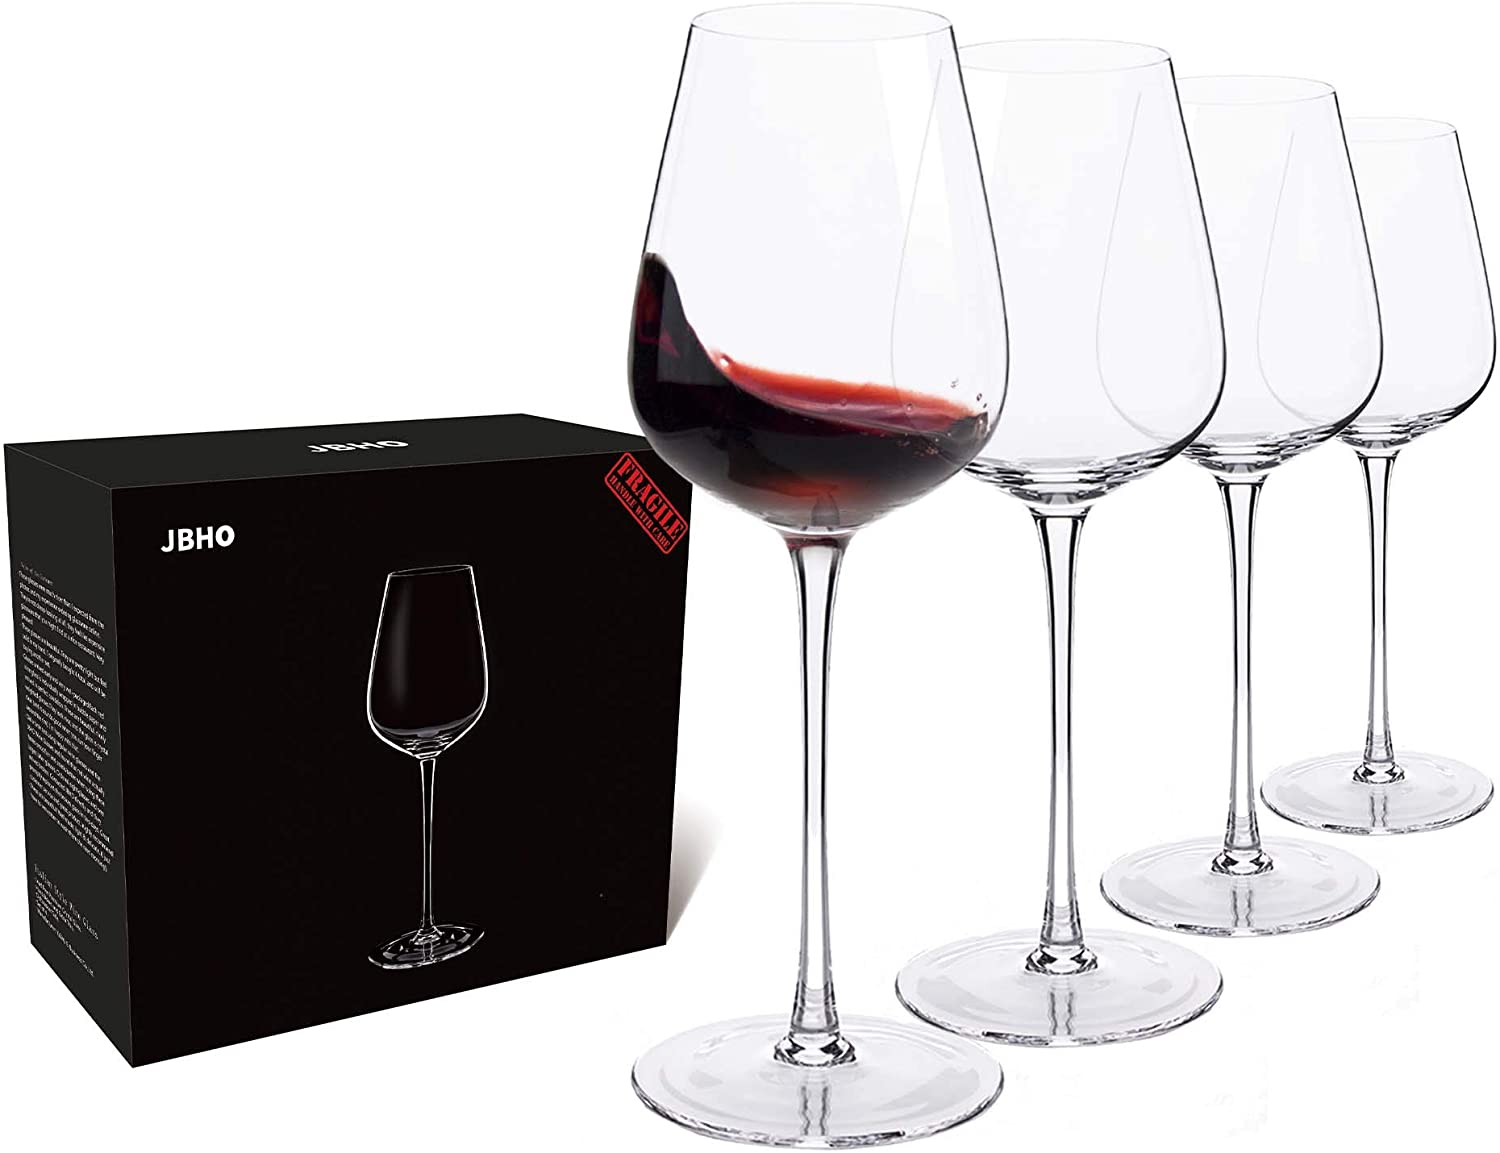 Set of 4 wine glasses for someone turning 40